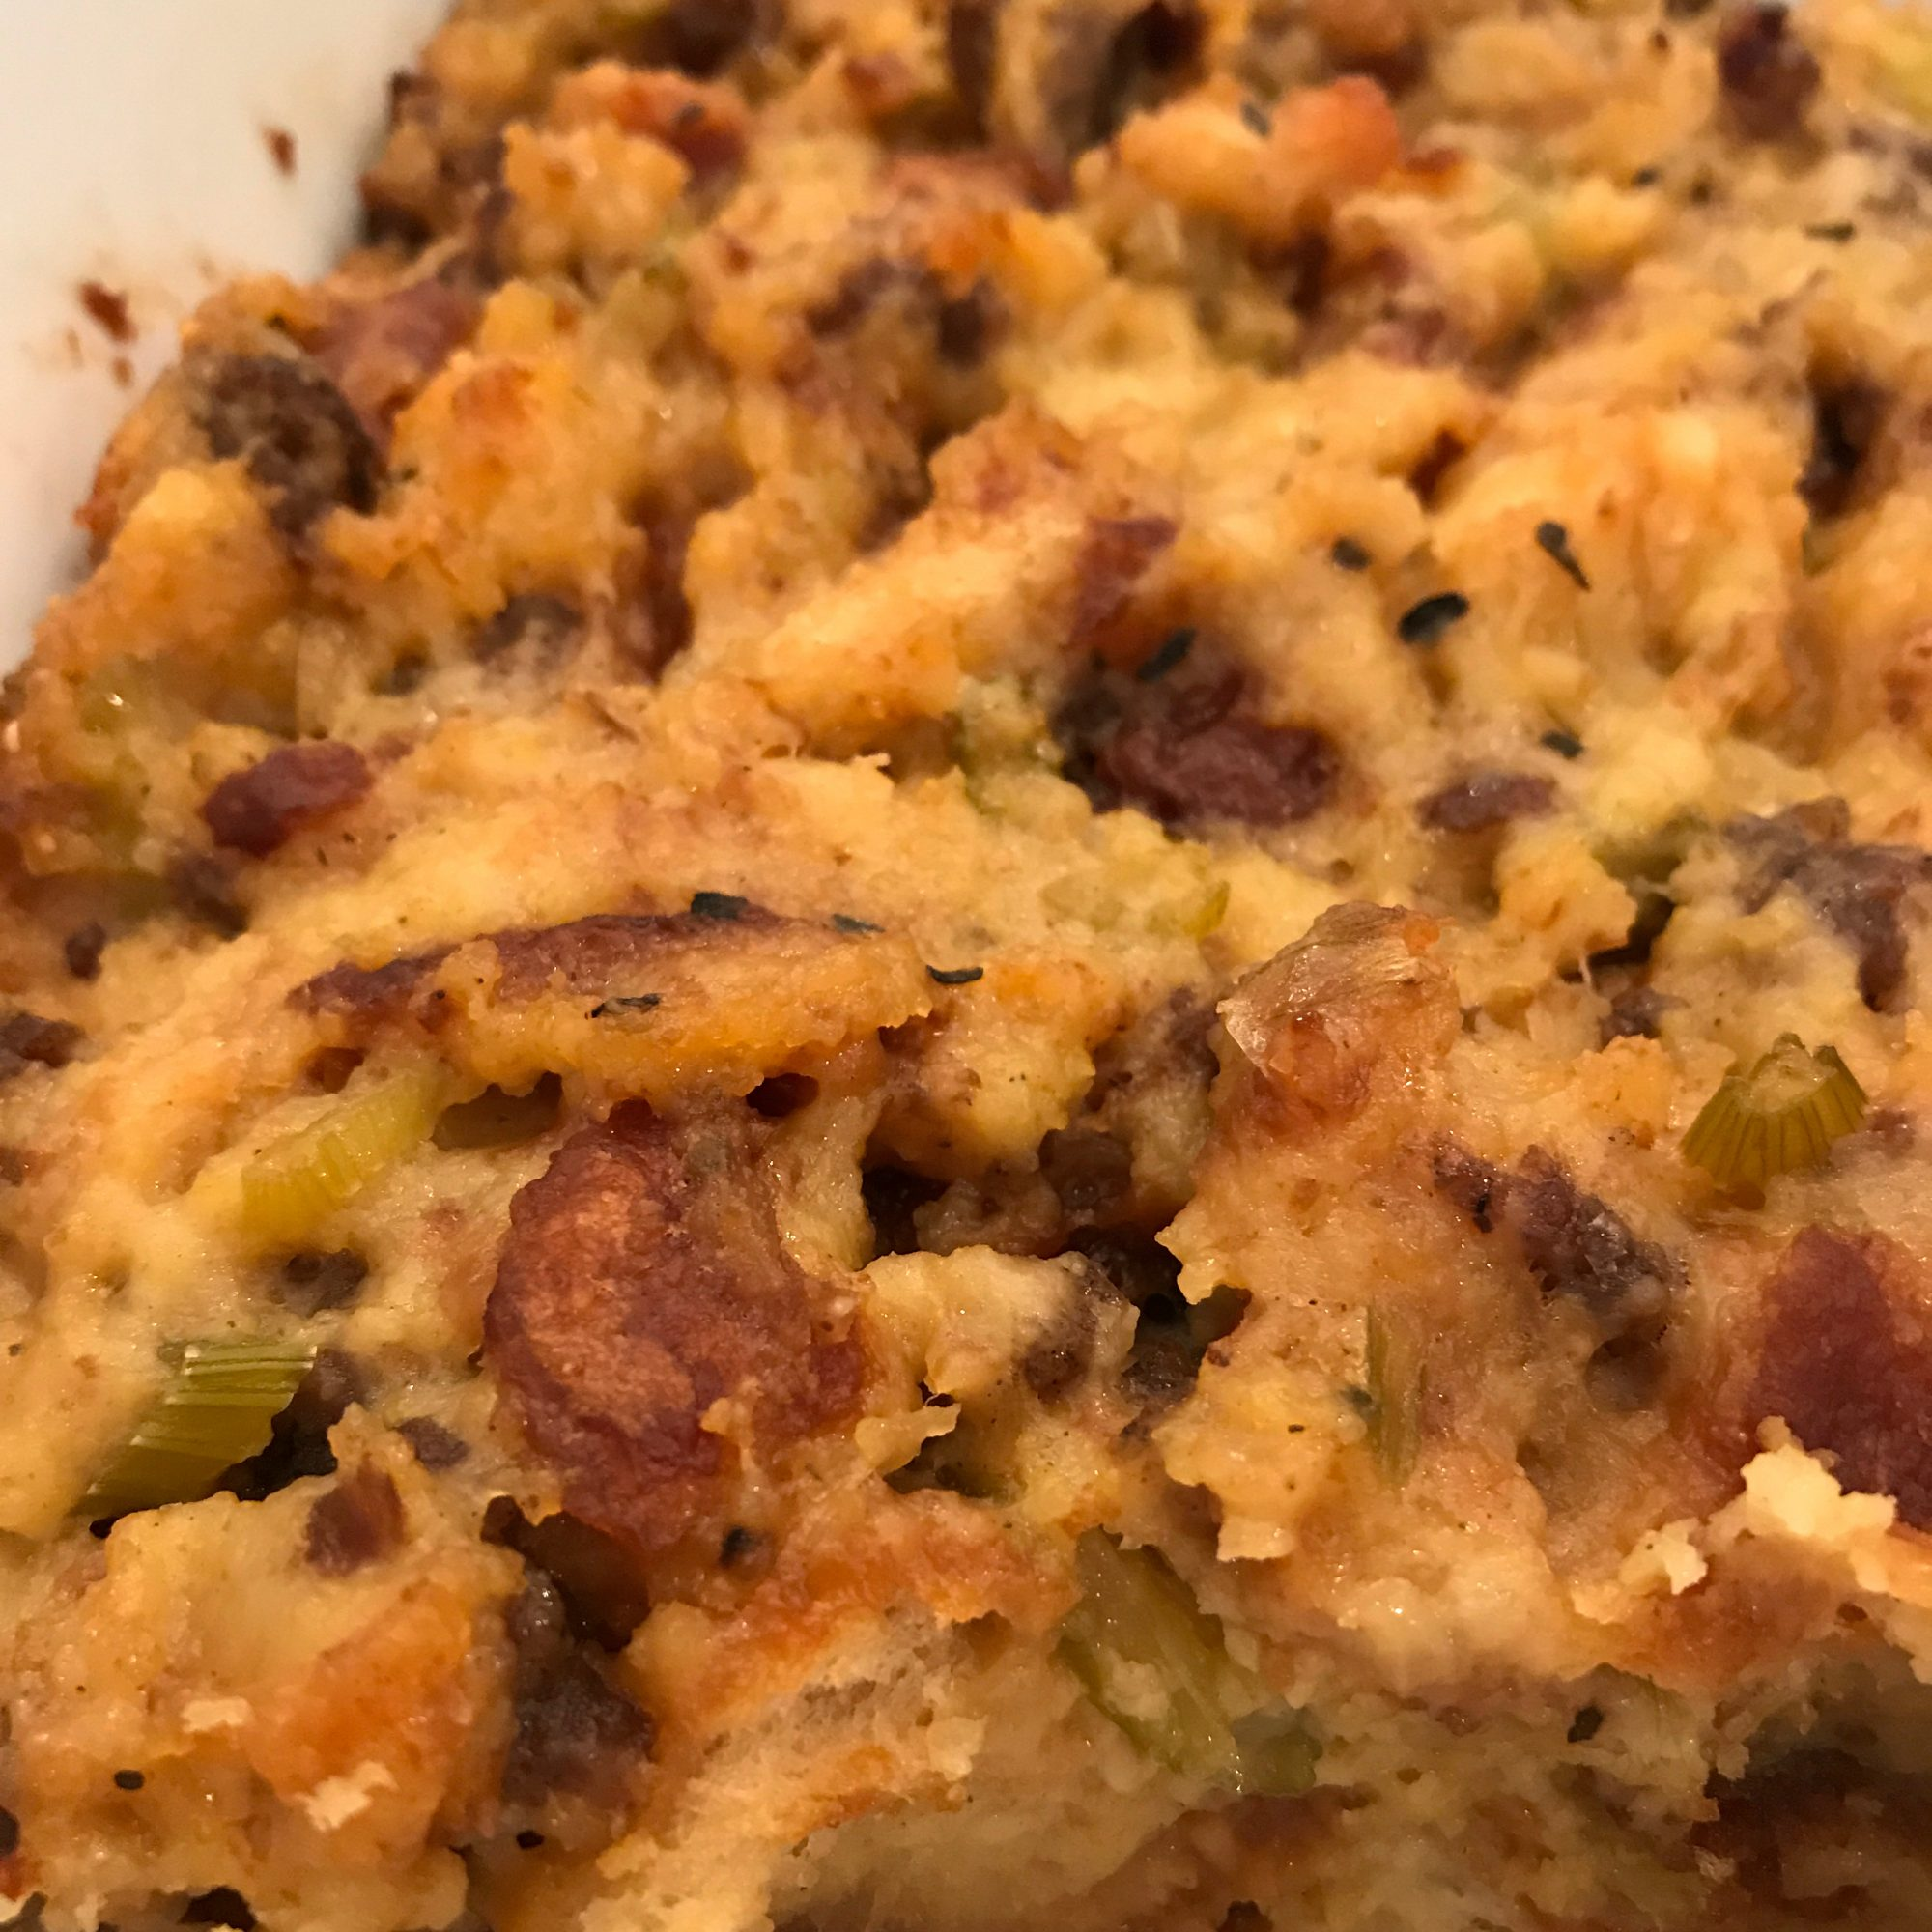 Hot, peppery chorizo works wonders in traditional corn bread stuffing. Combining cornbread, which hails from Africa, with Spanish-style chorizo, this dish seems fit for the melting pot that is New York.